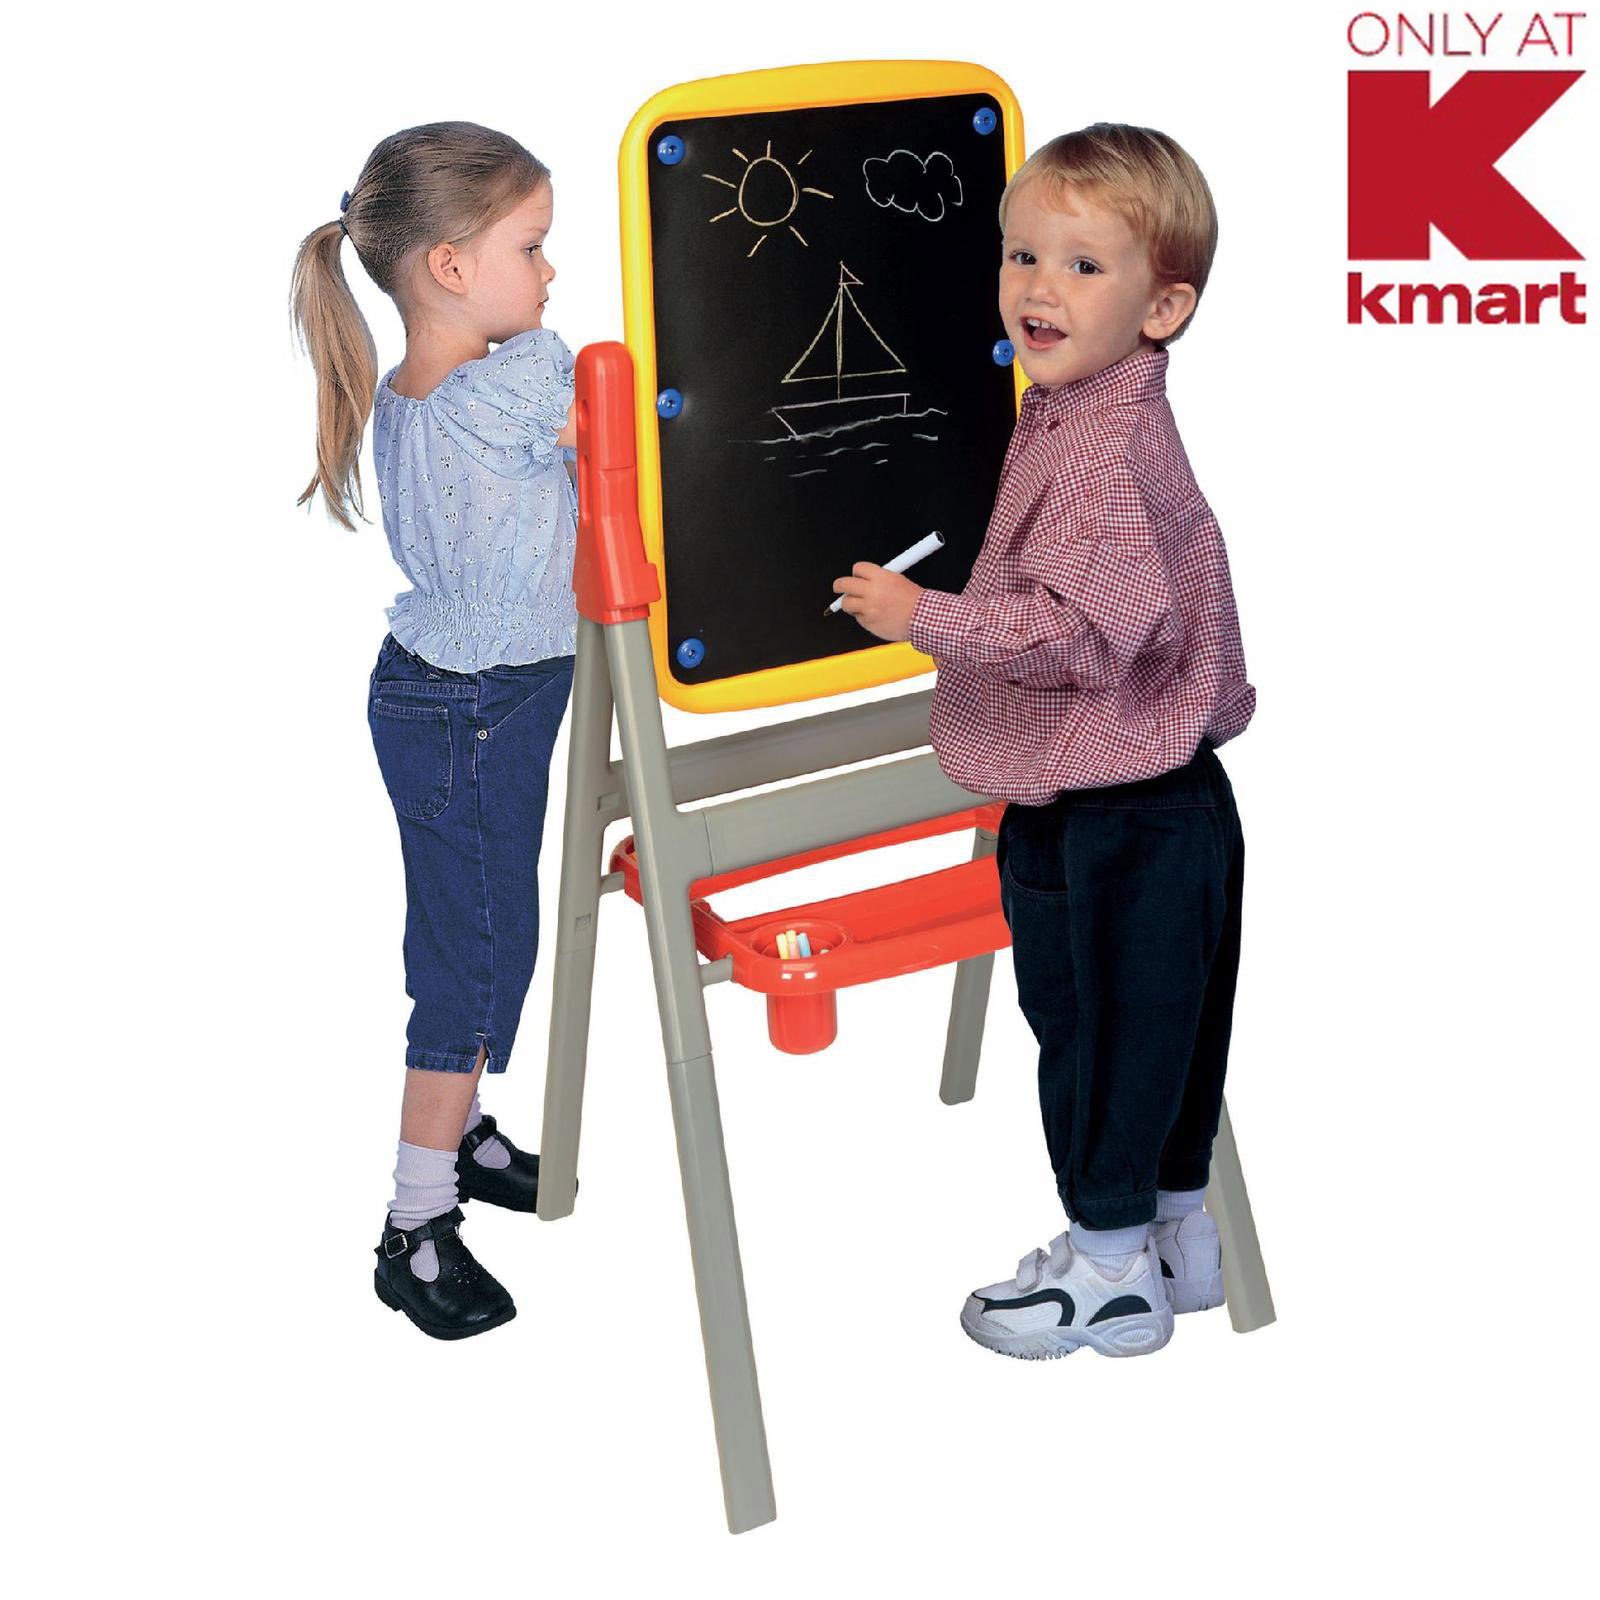 Just Kidz 3-in-1 Easel im test